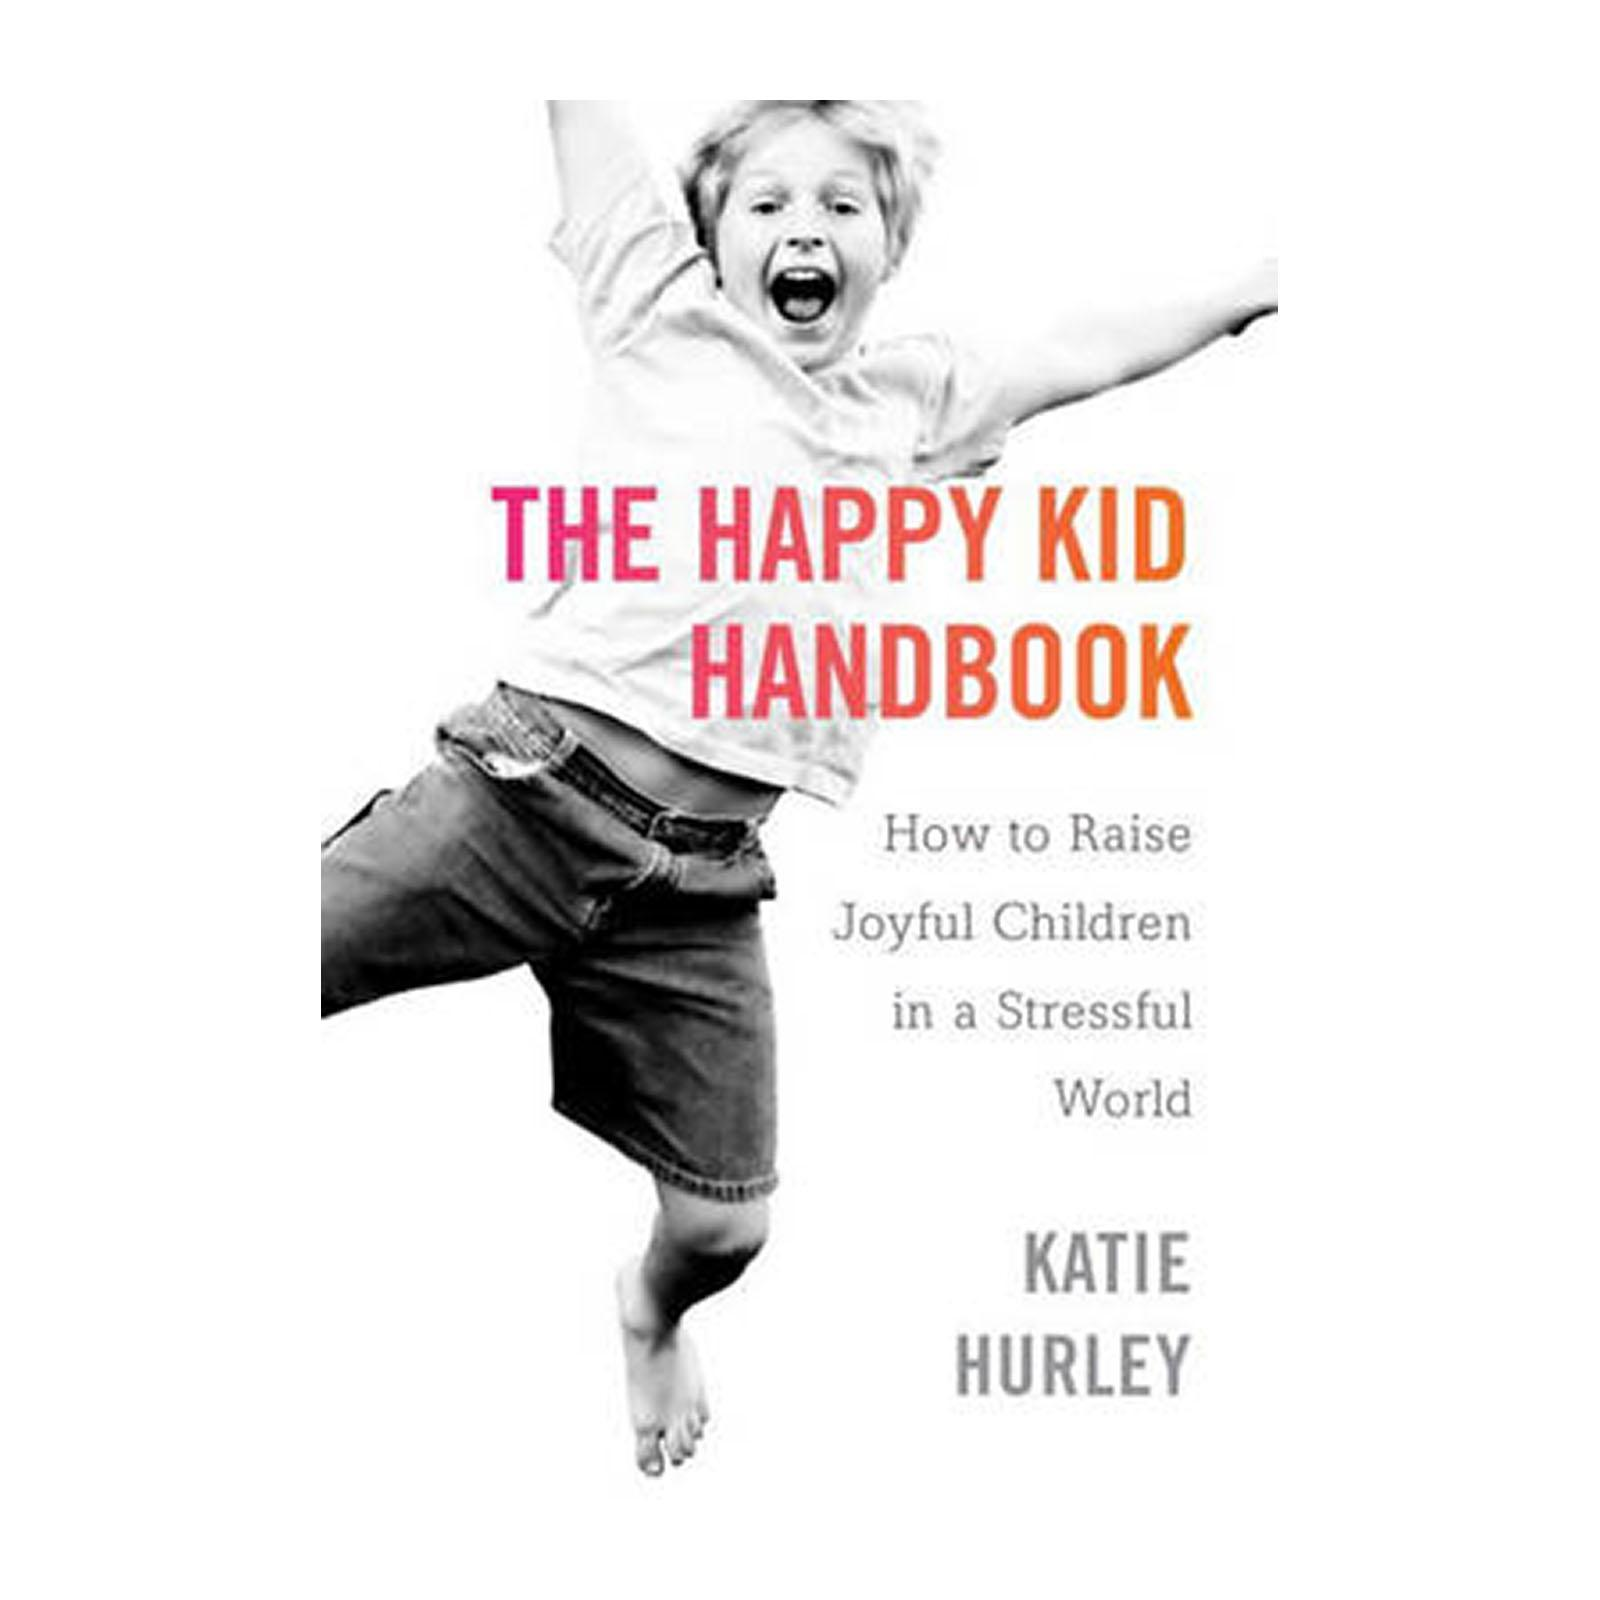 The Happy Kids Handbook: How To Raise Joyful Children In A Stressful World (Paperback)